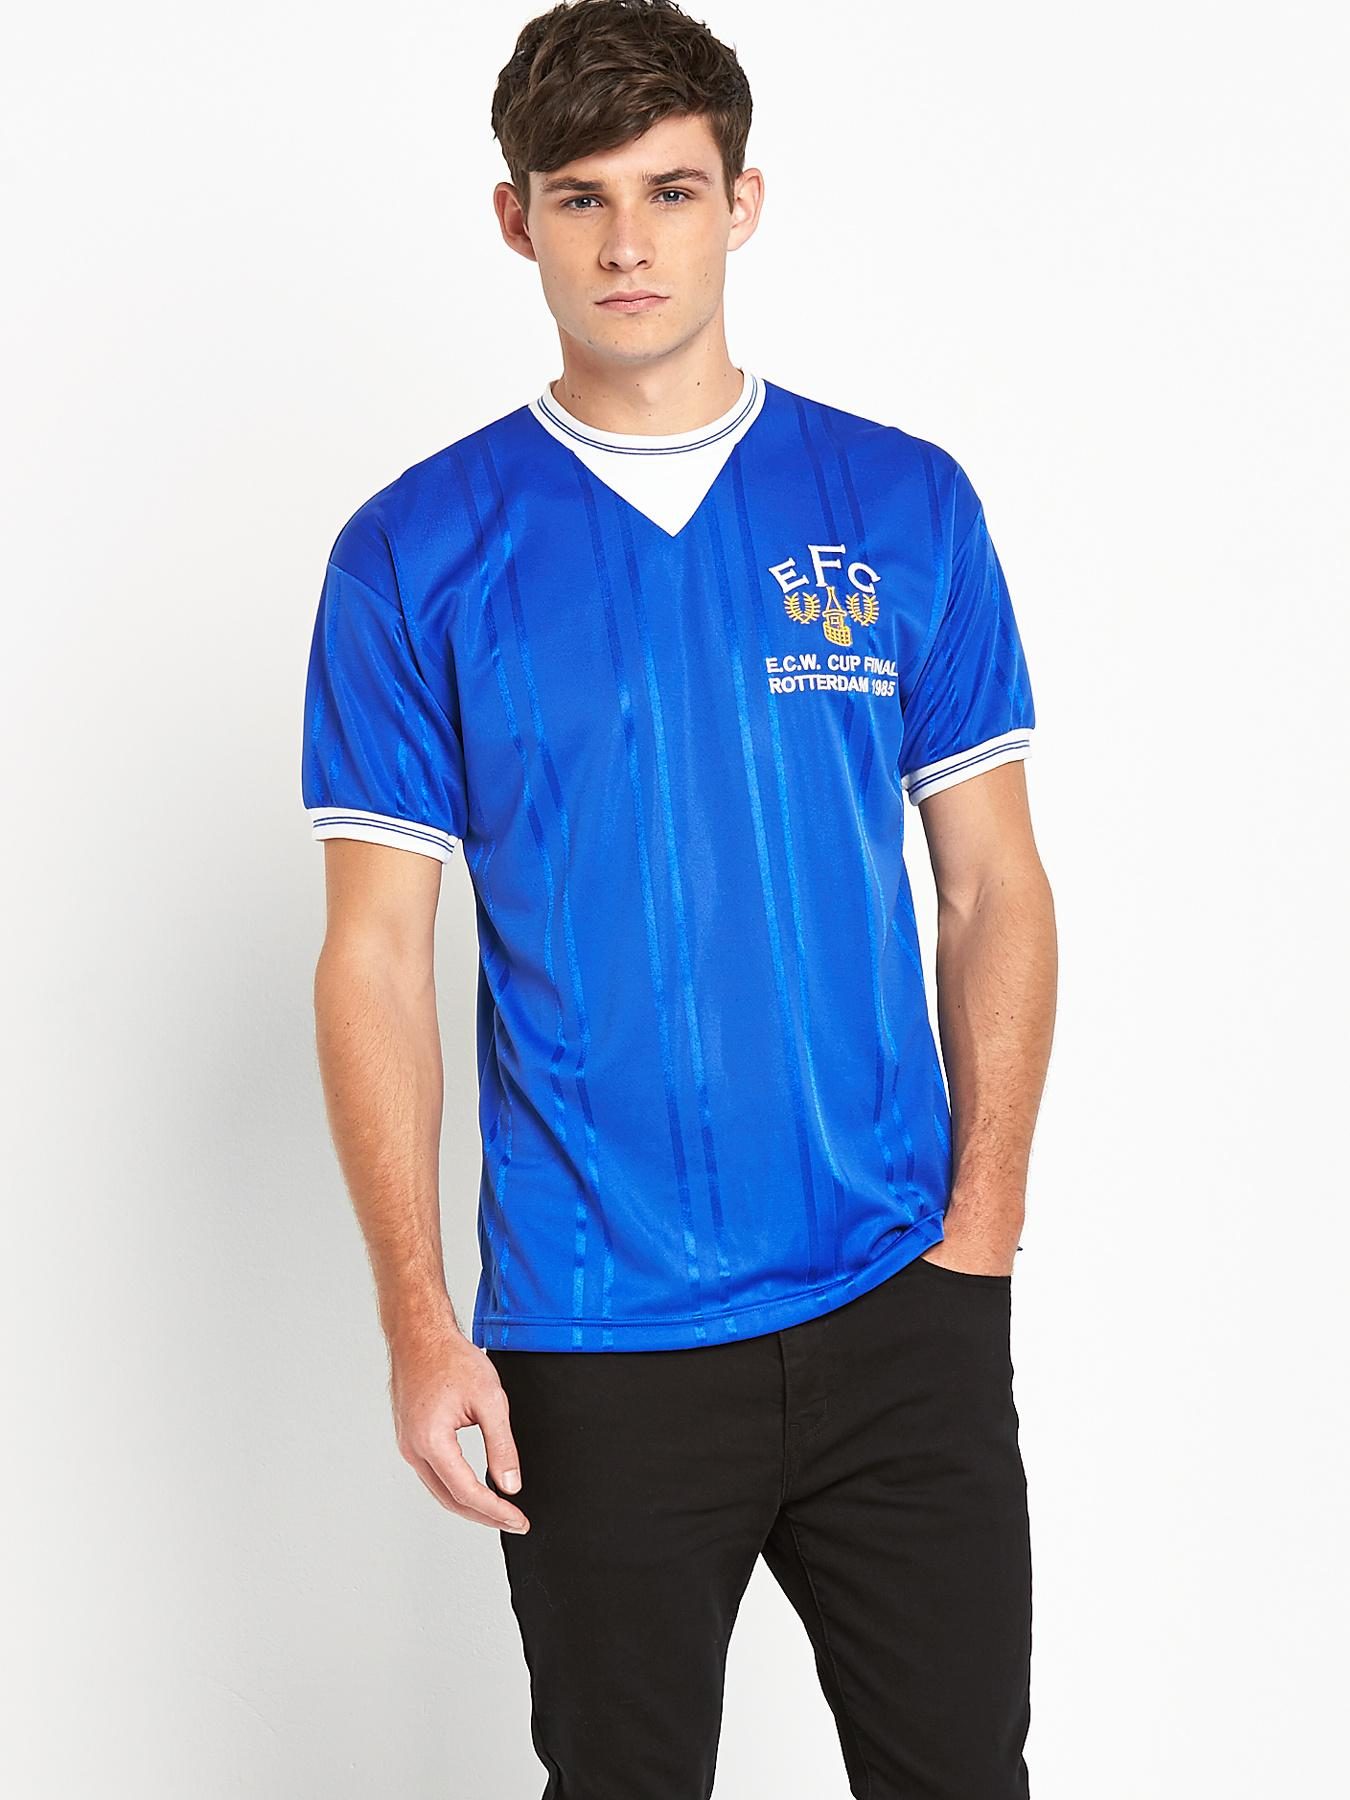 Everton Mens 1985 European Cup Winners Final Shirt